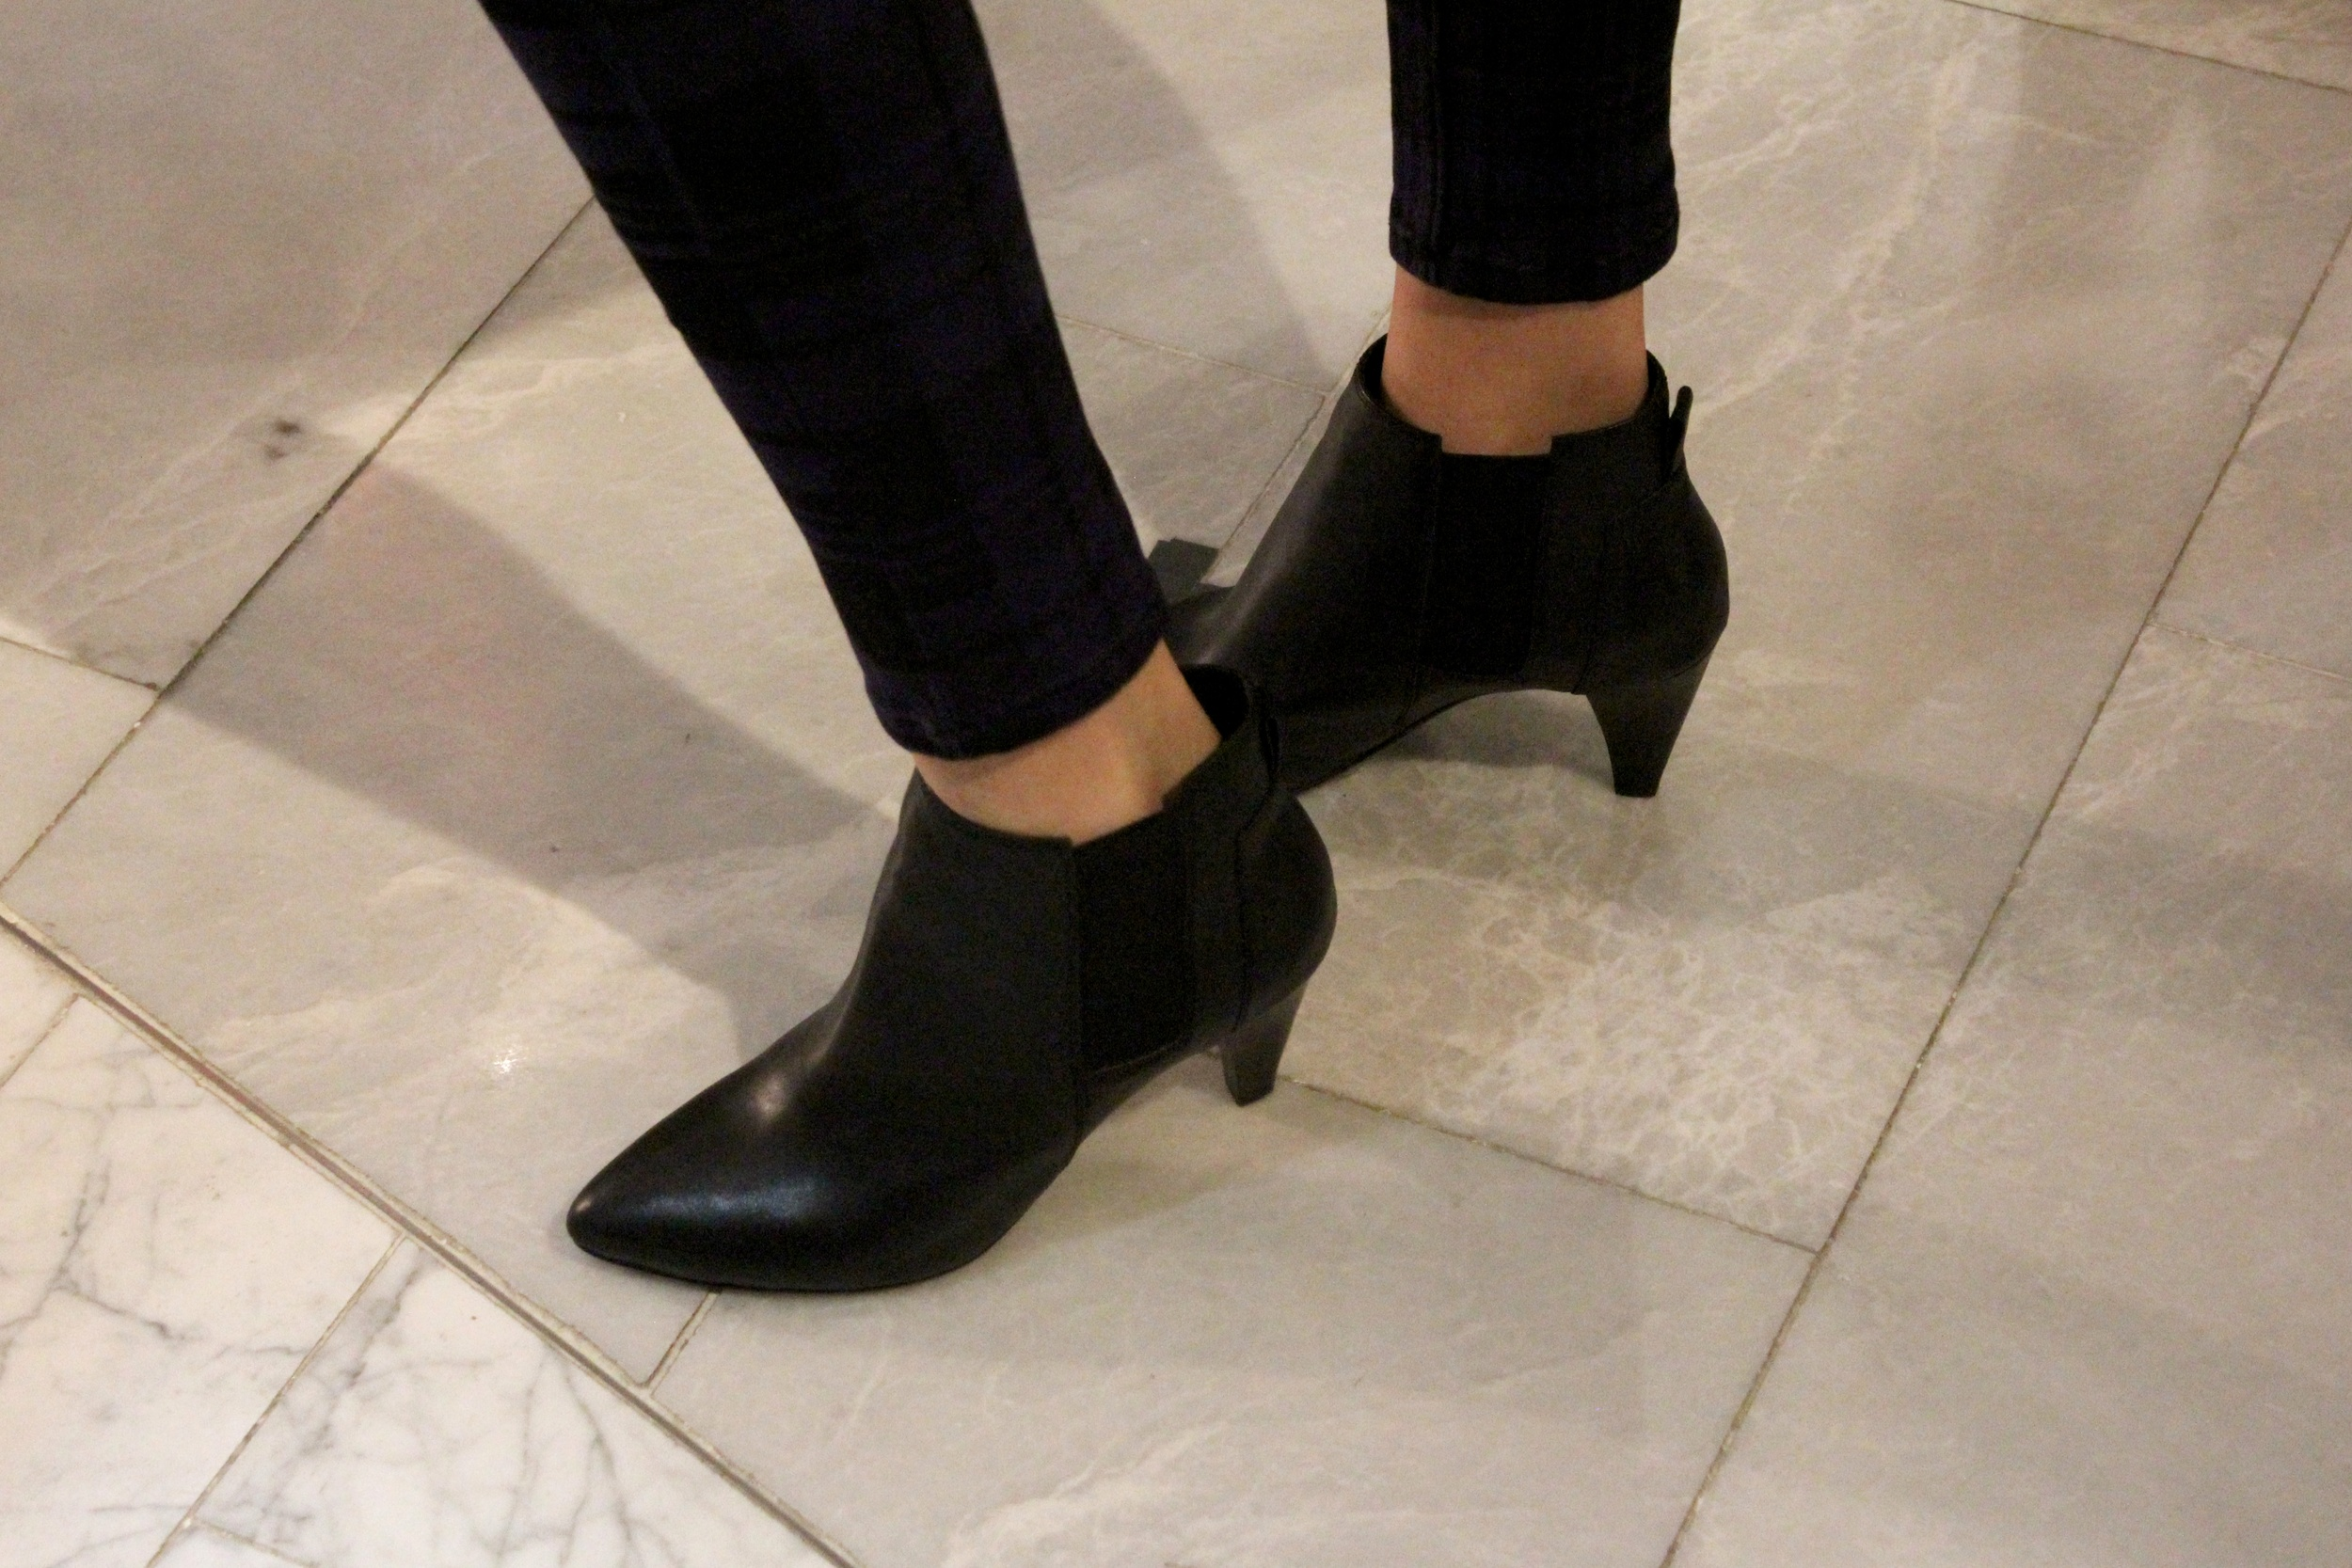 Shoes:  Leather ankle boots